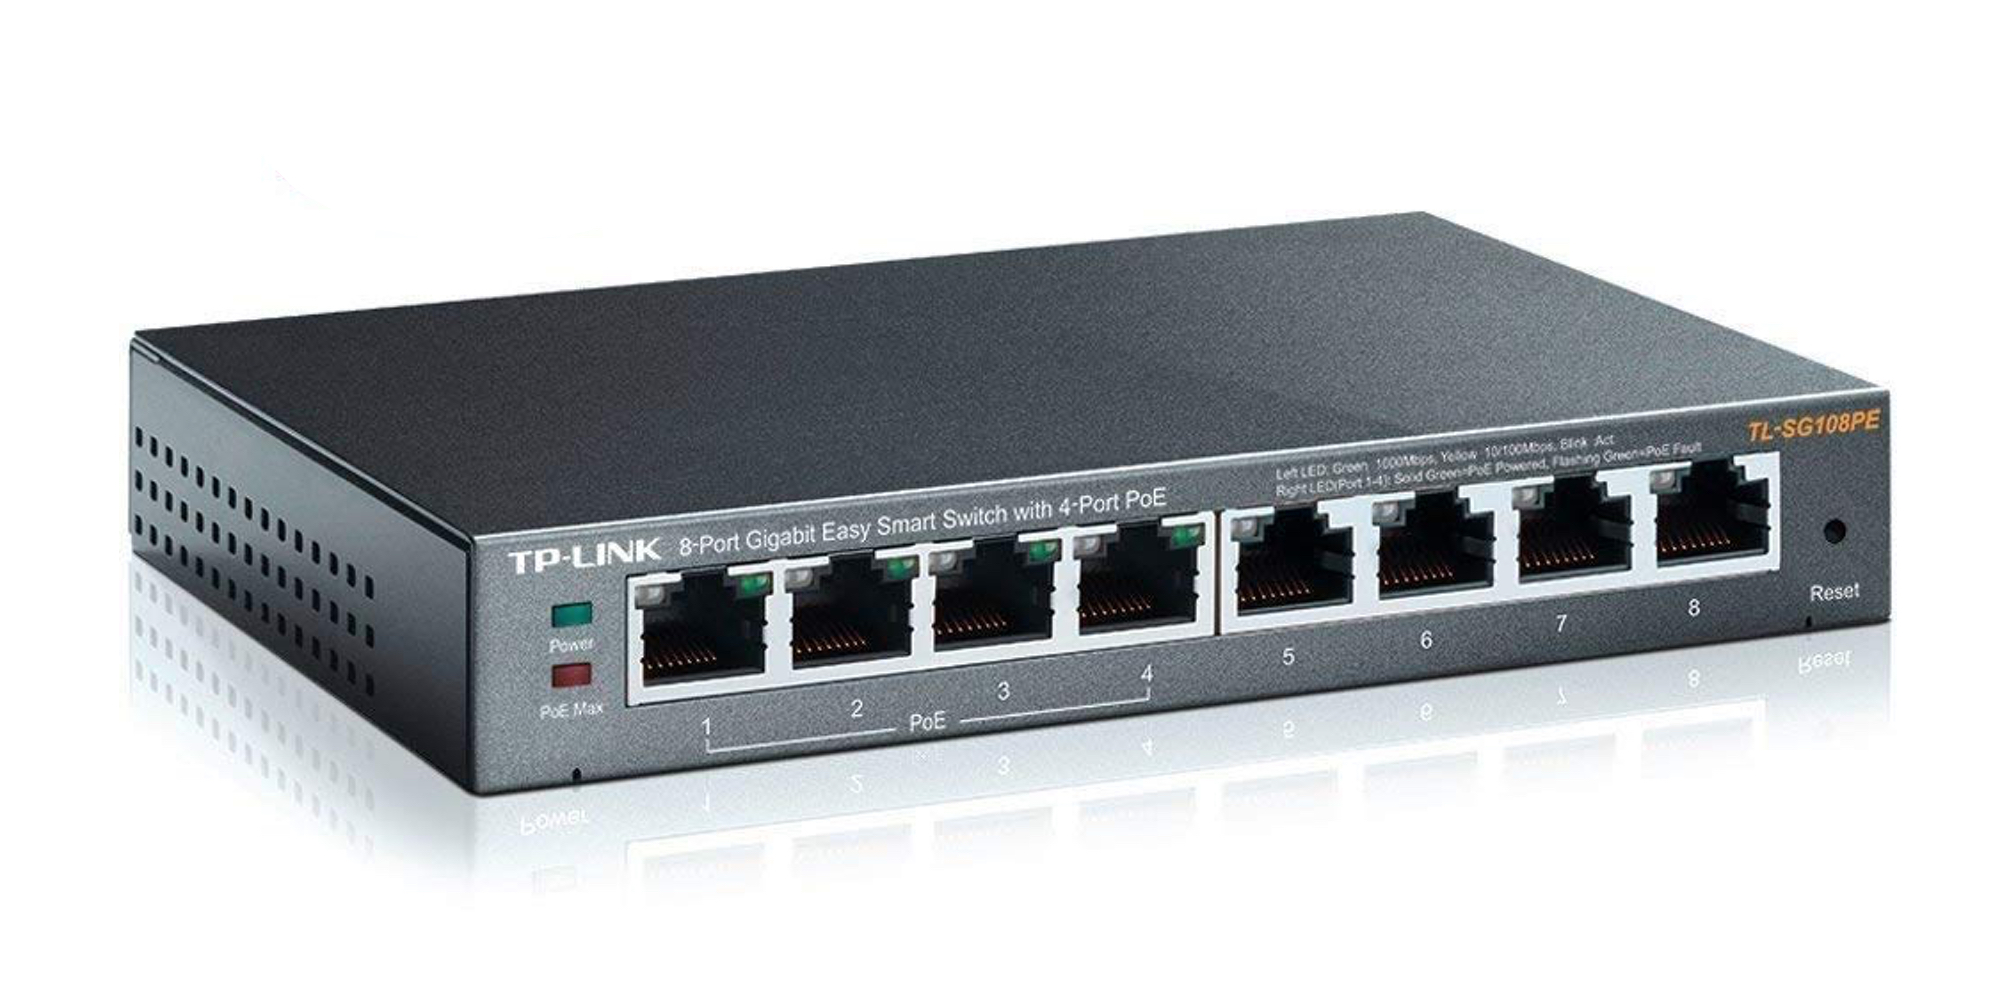 TP-Link's 8-Port Gigabit PoE Managed Switch powers routers, cameras and more: $60 (Save $20)